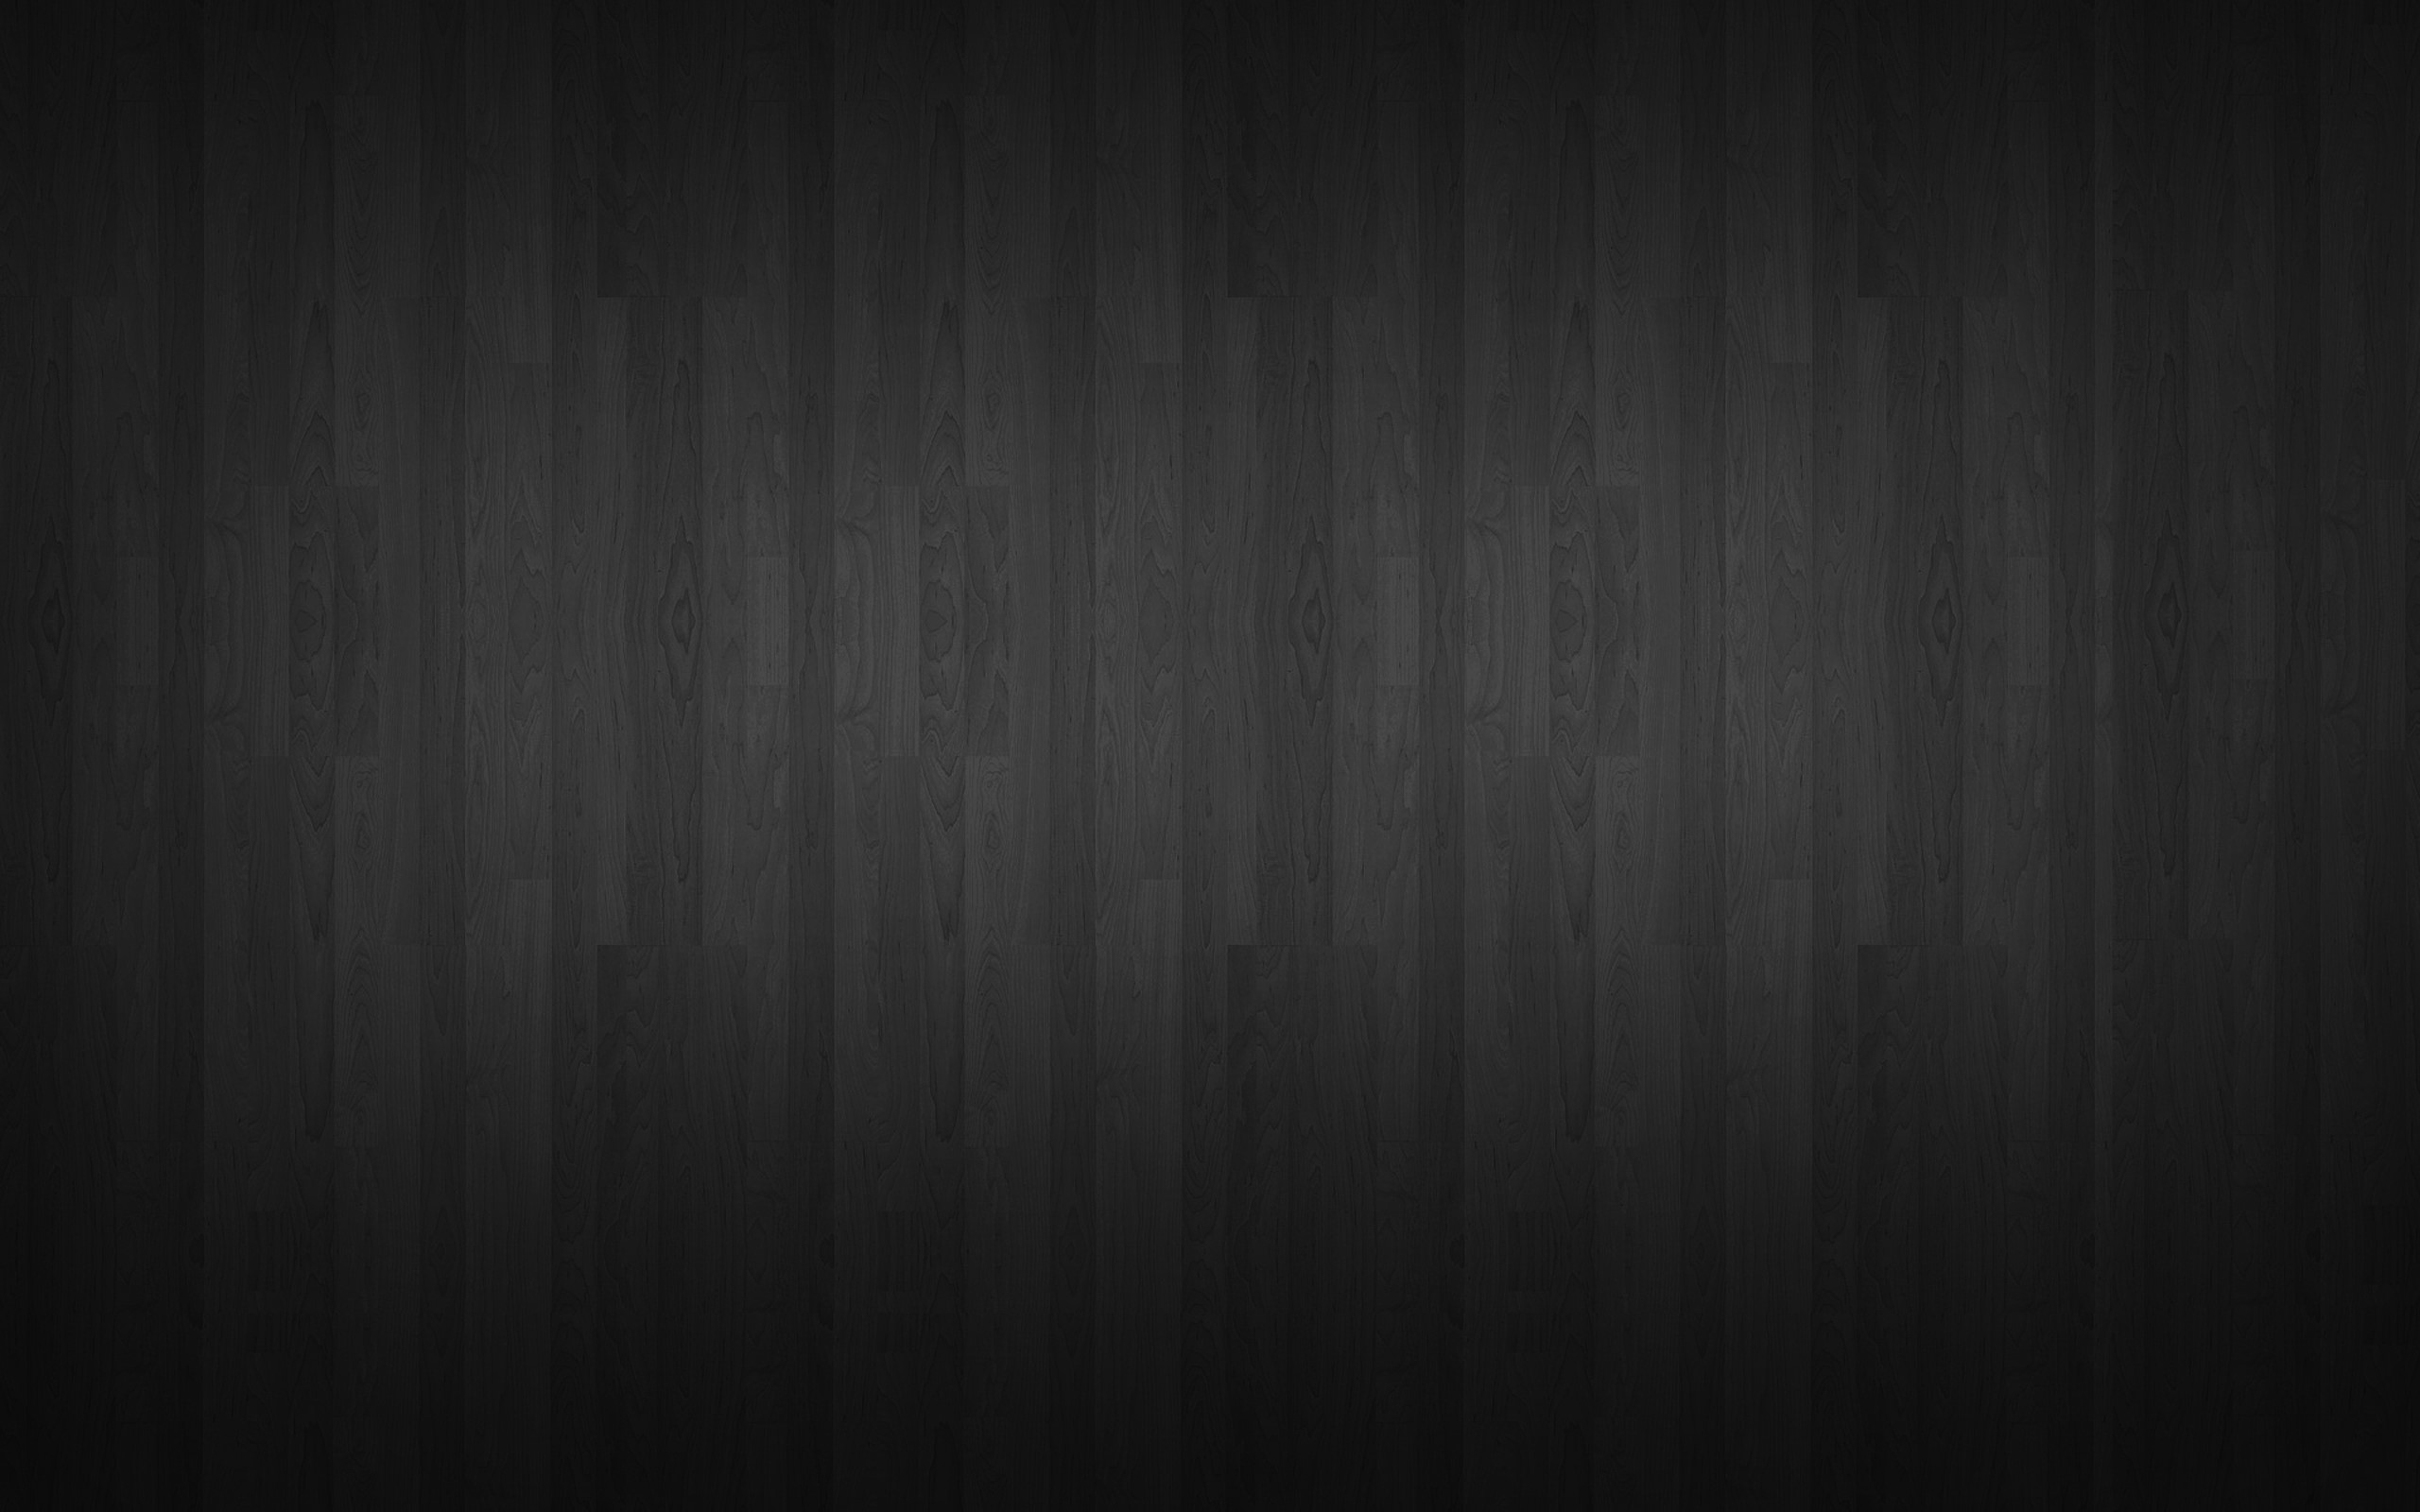 Wallpaper Wood texture in black